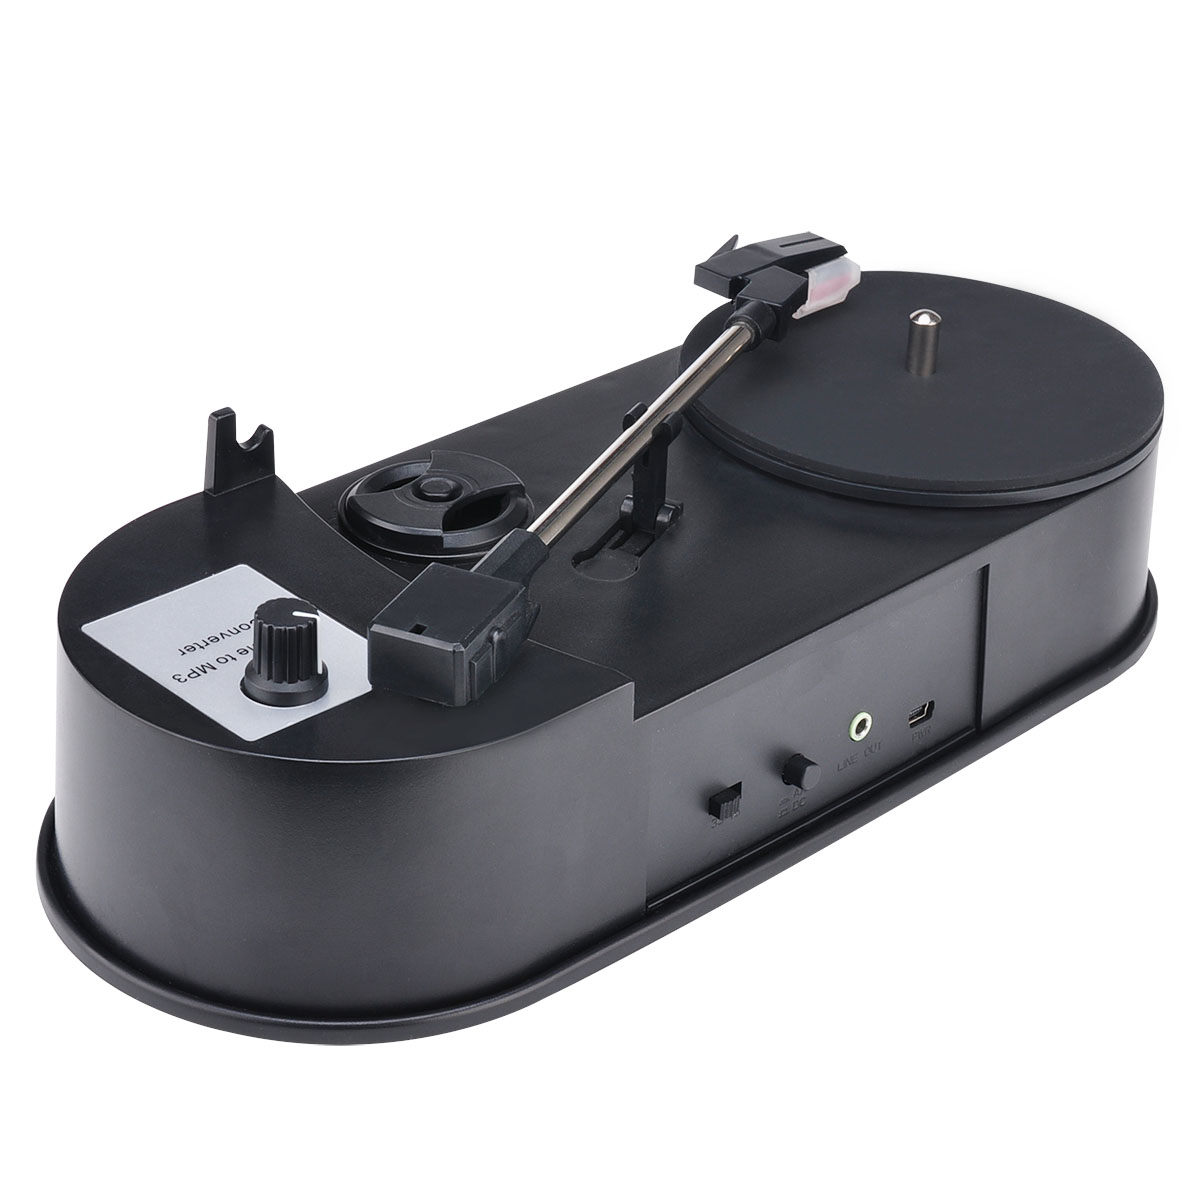 New version Mini USB Turntable vinyl player with PC recording function phono player vinyl to MP3 ezcap610P